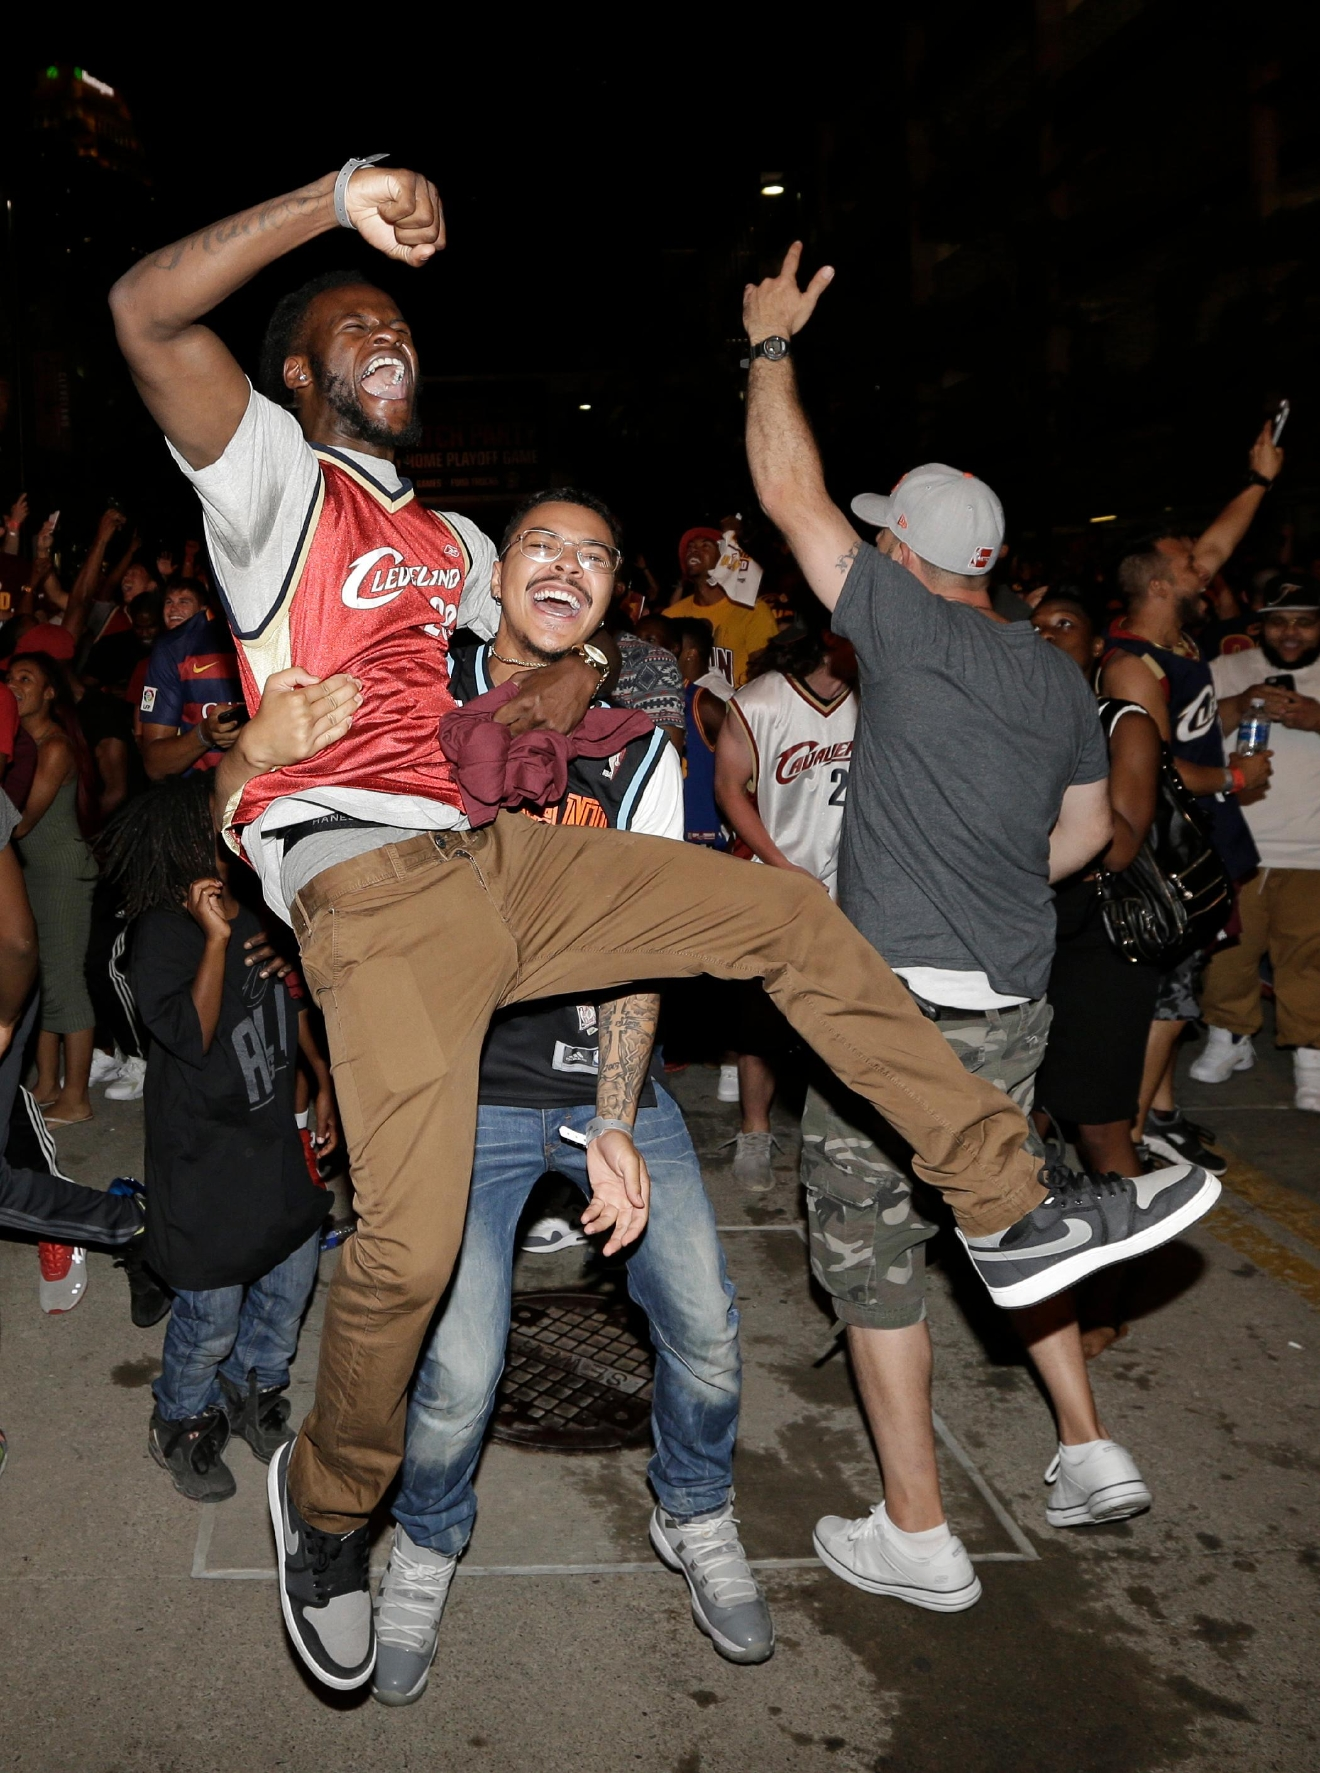 Cleveland Cavalier fans celebrate after the Cavaliers defeated the Golden State Warriors, 93-89, in Game 7 of the NBA basketball Finals, Sunday, June 19, 2016, in Cleveland. (AP Photo/Tony Dejak)